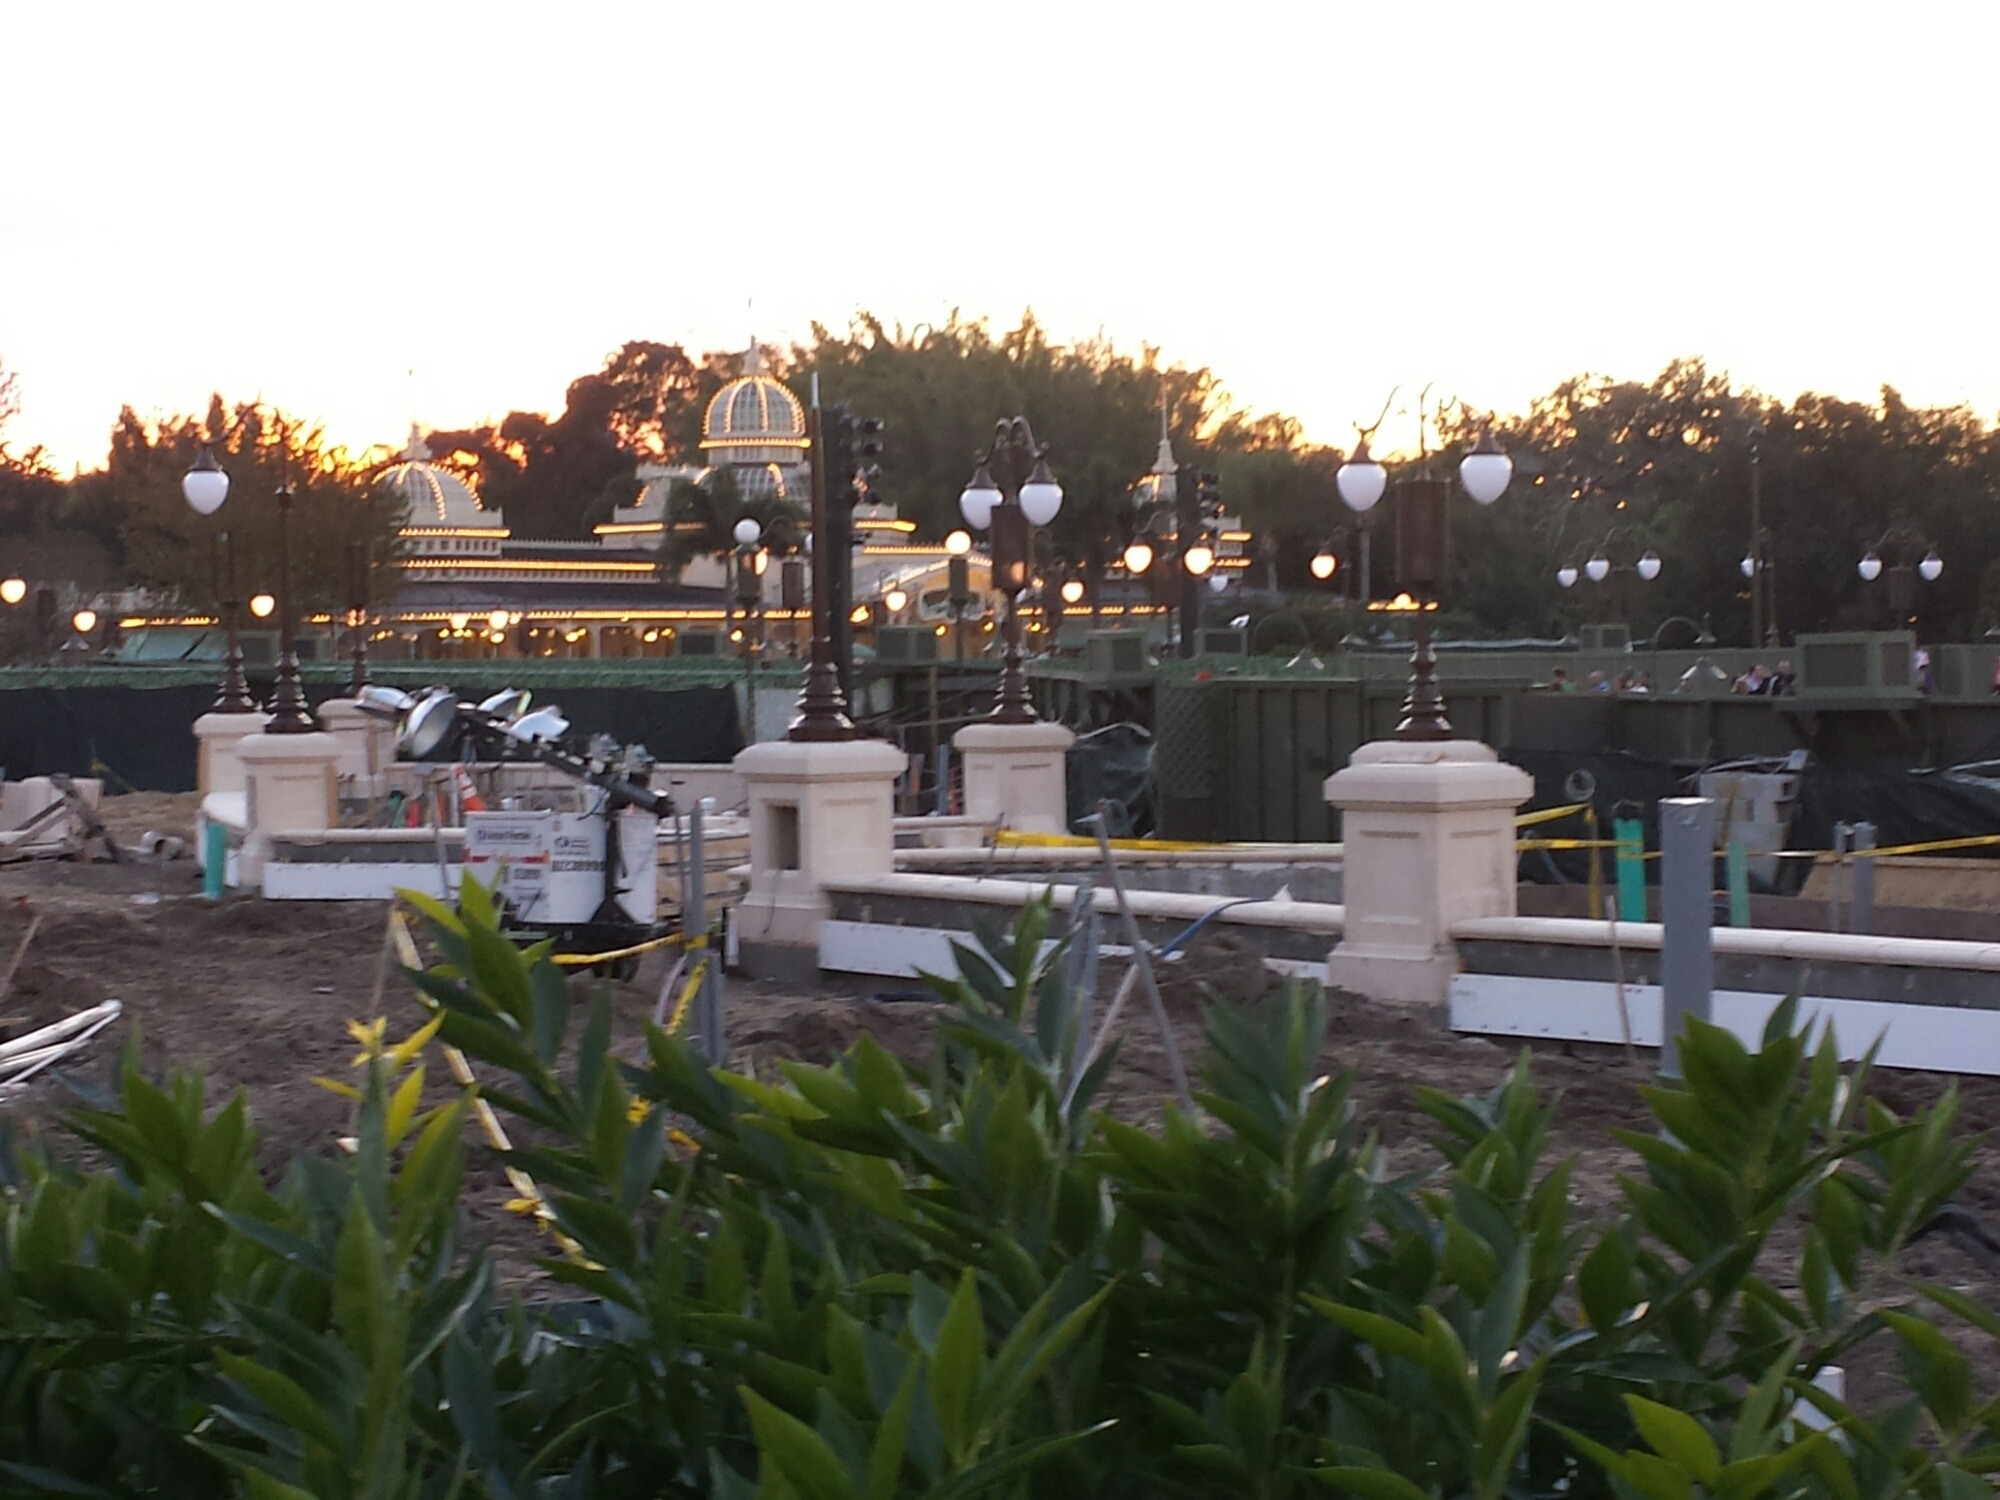 New lamp posts up around hub construction at the Magic Kingdom #WDW